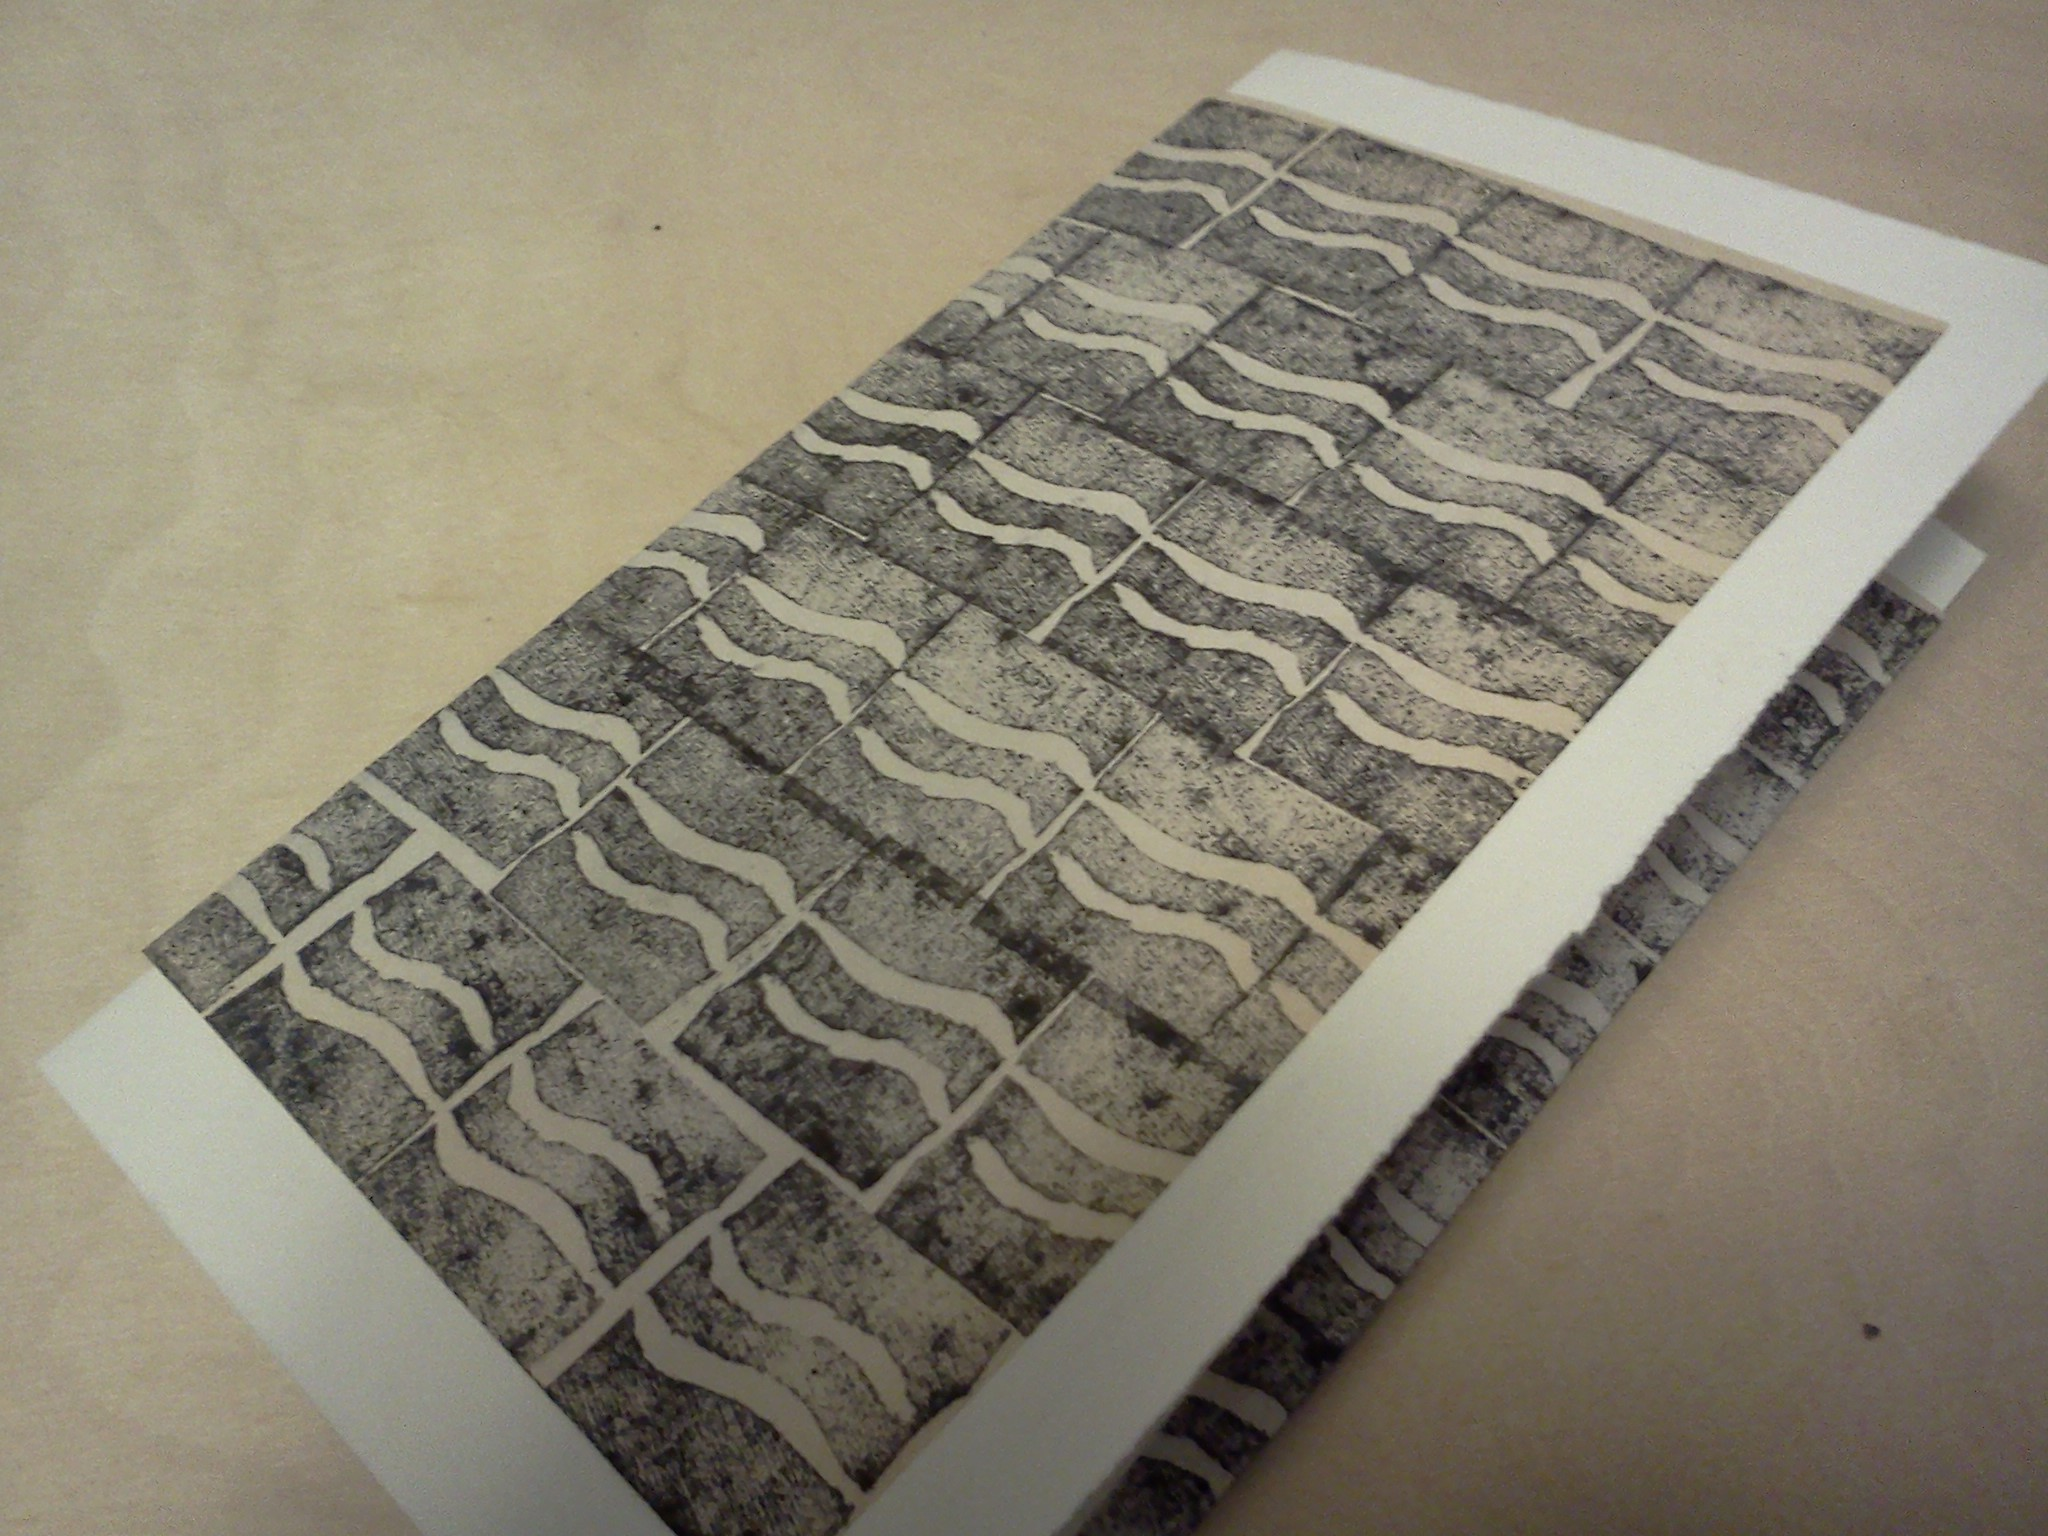 The wavy lines are made from a stamp I carved out of an eraser.